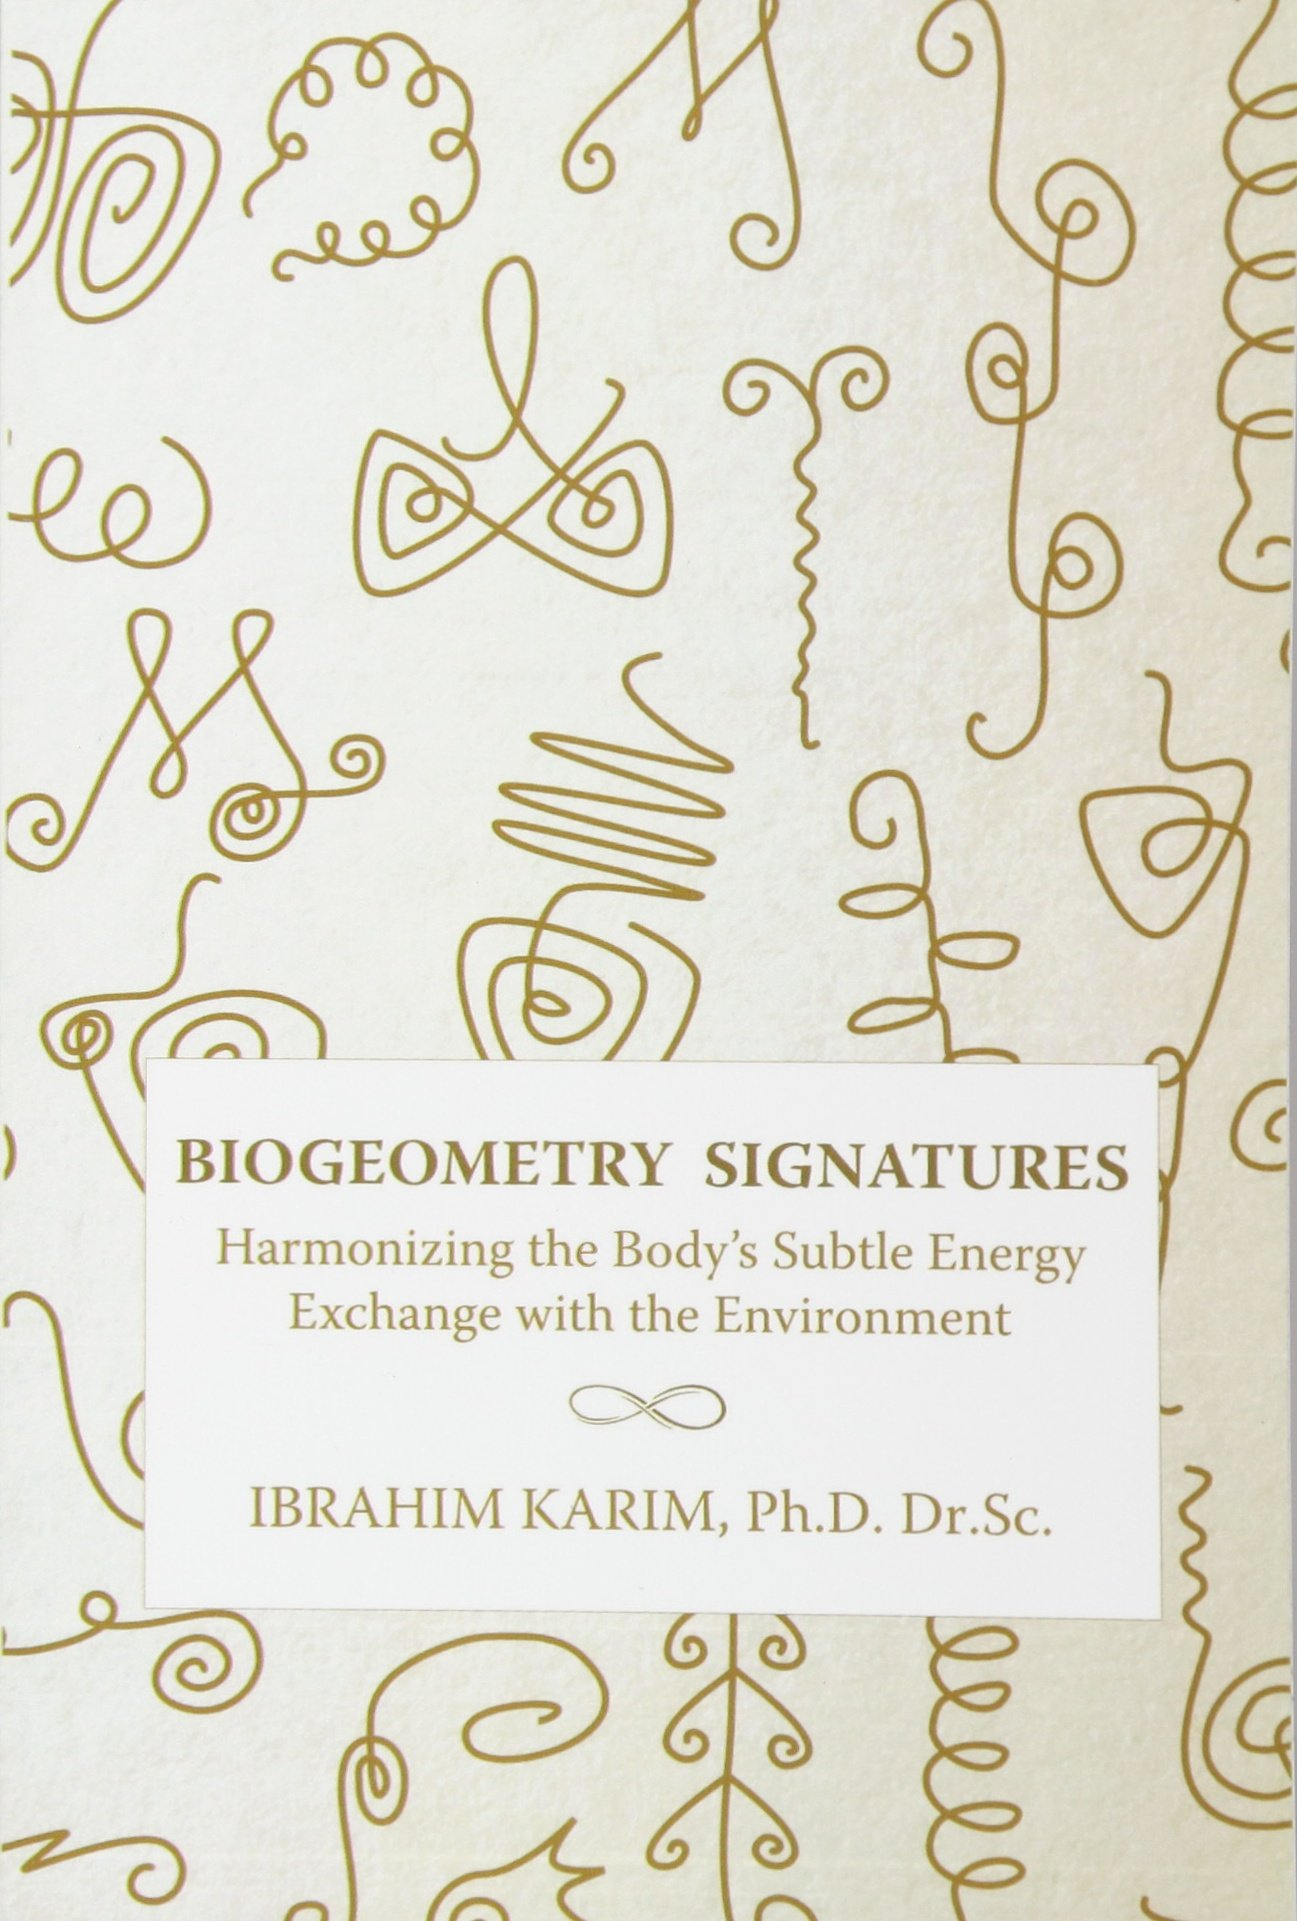 BioGeometry Signatures: Harmonizing the Body's Subtle Energy Exchange with the Environment PDF